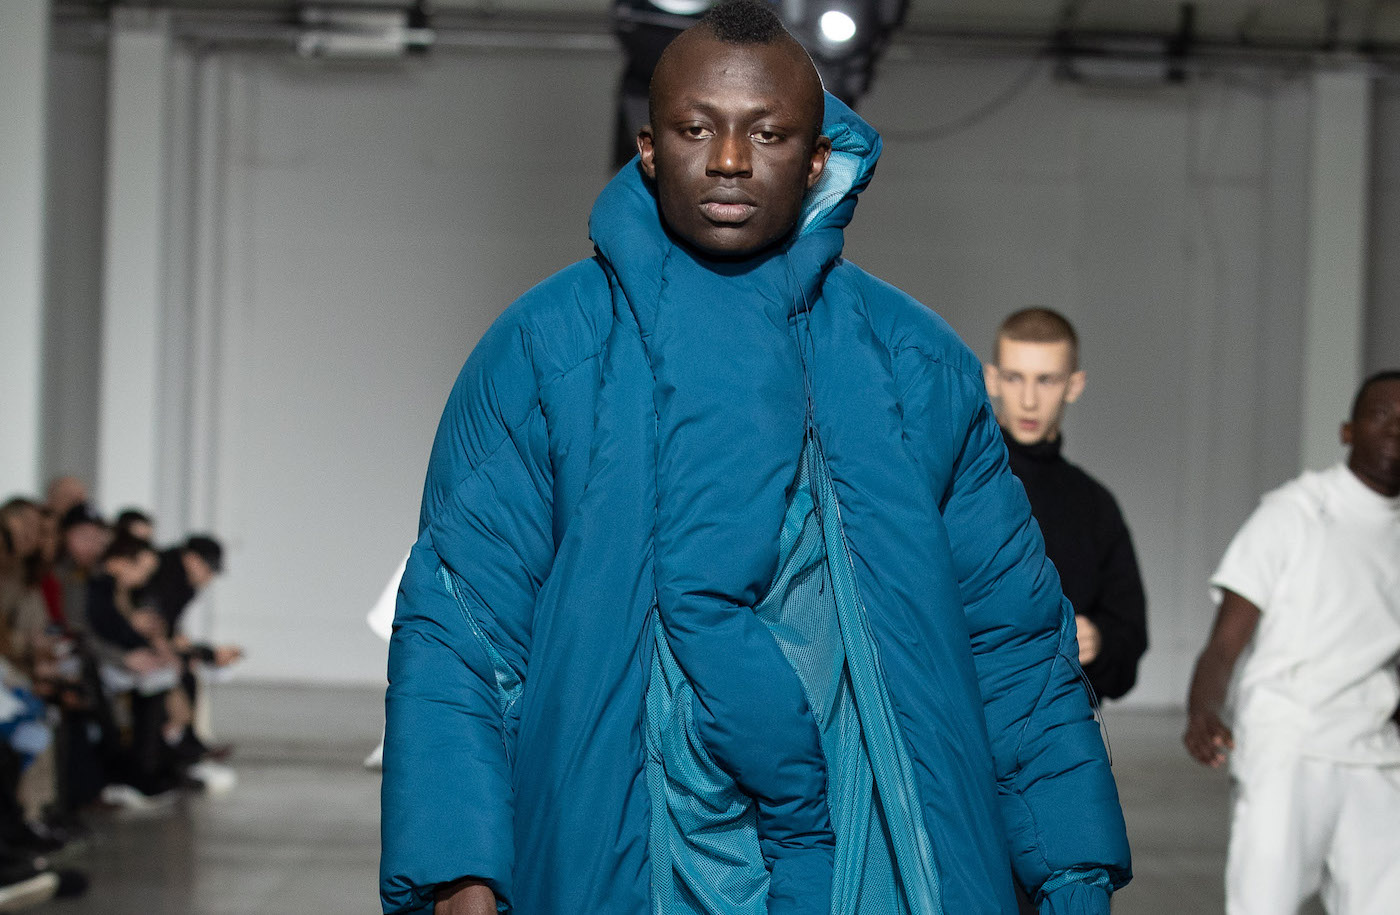 LFW: Saul Nash Autumn/Winter 2020 Collection